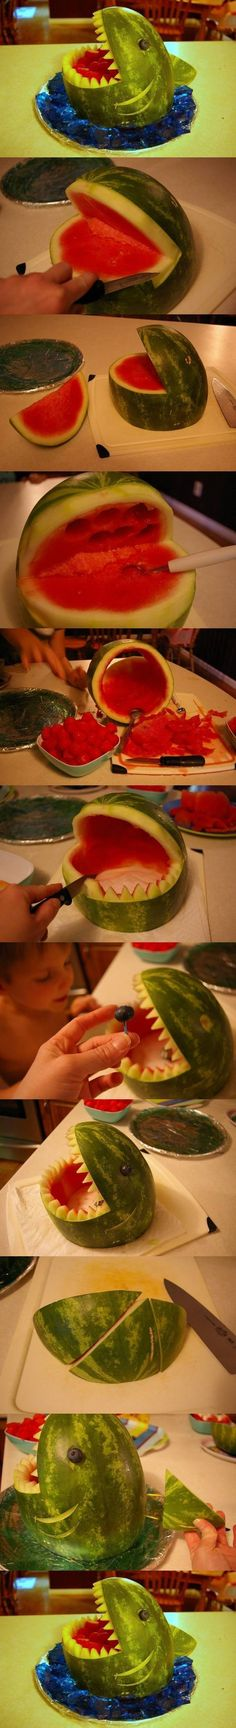 diy, watermelon carving, internet tutorial, shark